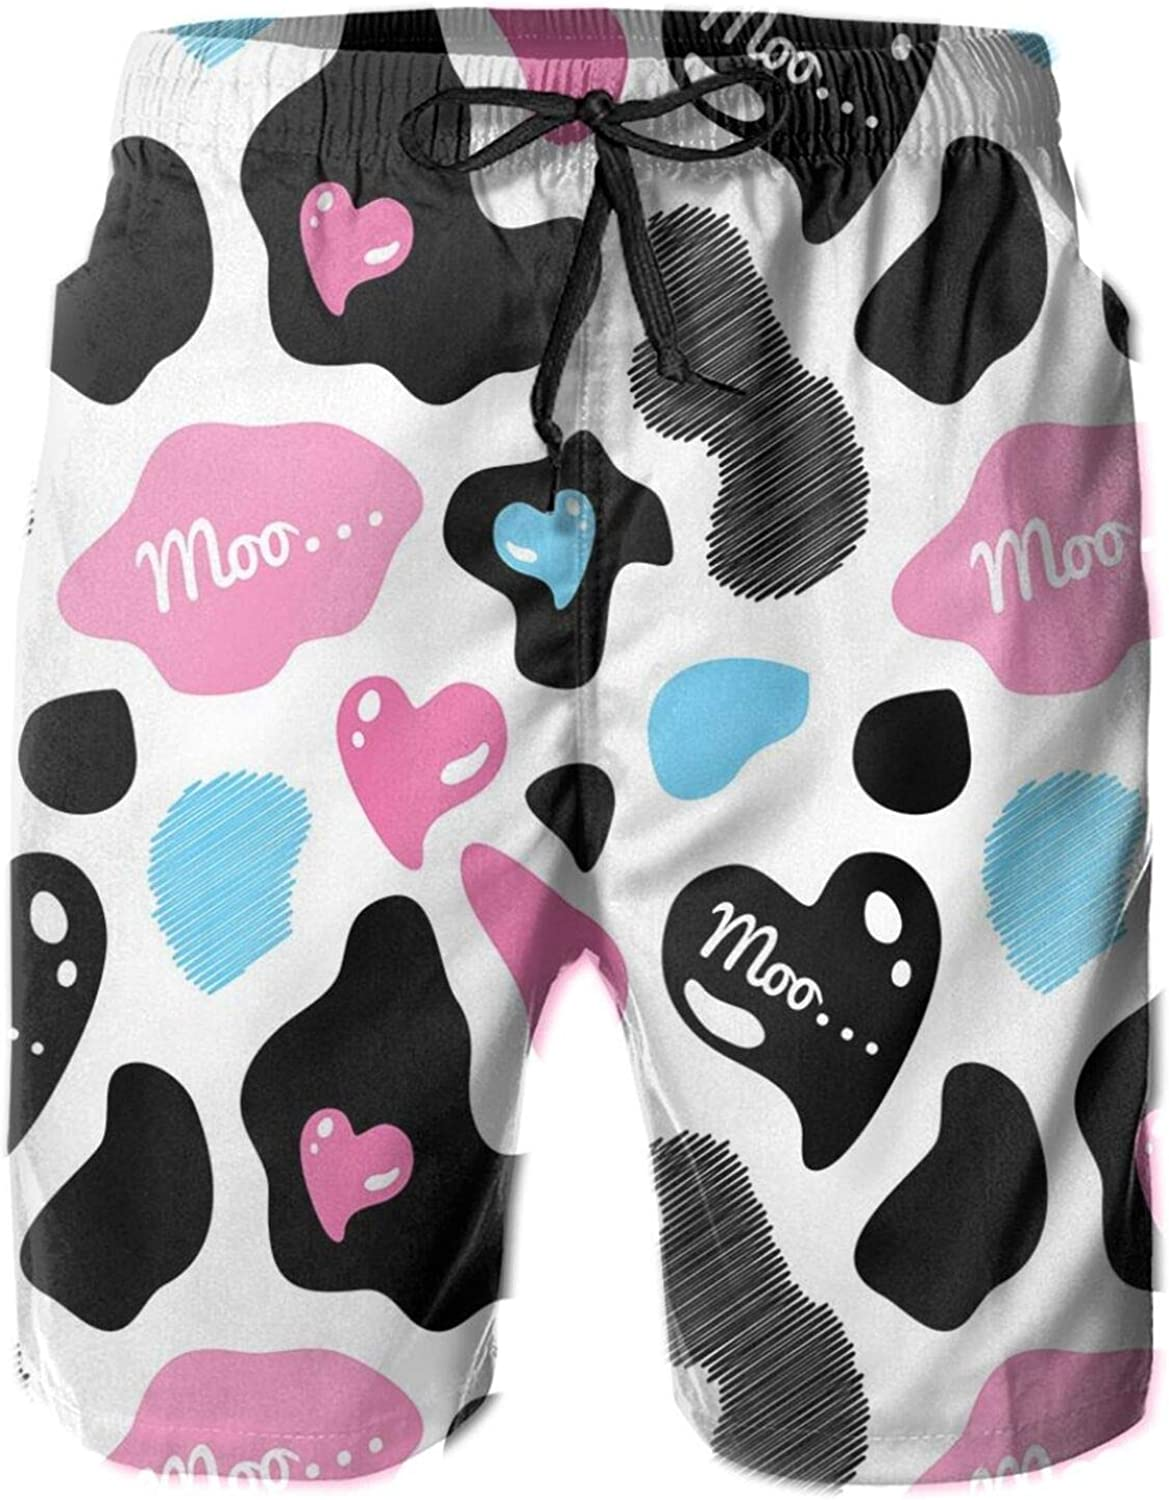 Cow Hide with Hearts Moo Barnyard Love Valentines Abstract Design Drawstring Waist Beach Shorts for Men Swim Trucks Board Shorts with Mesh Lining,M